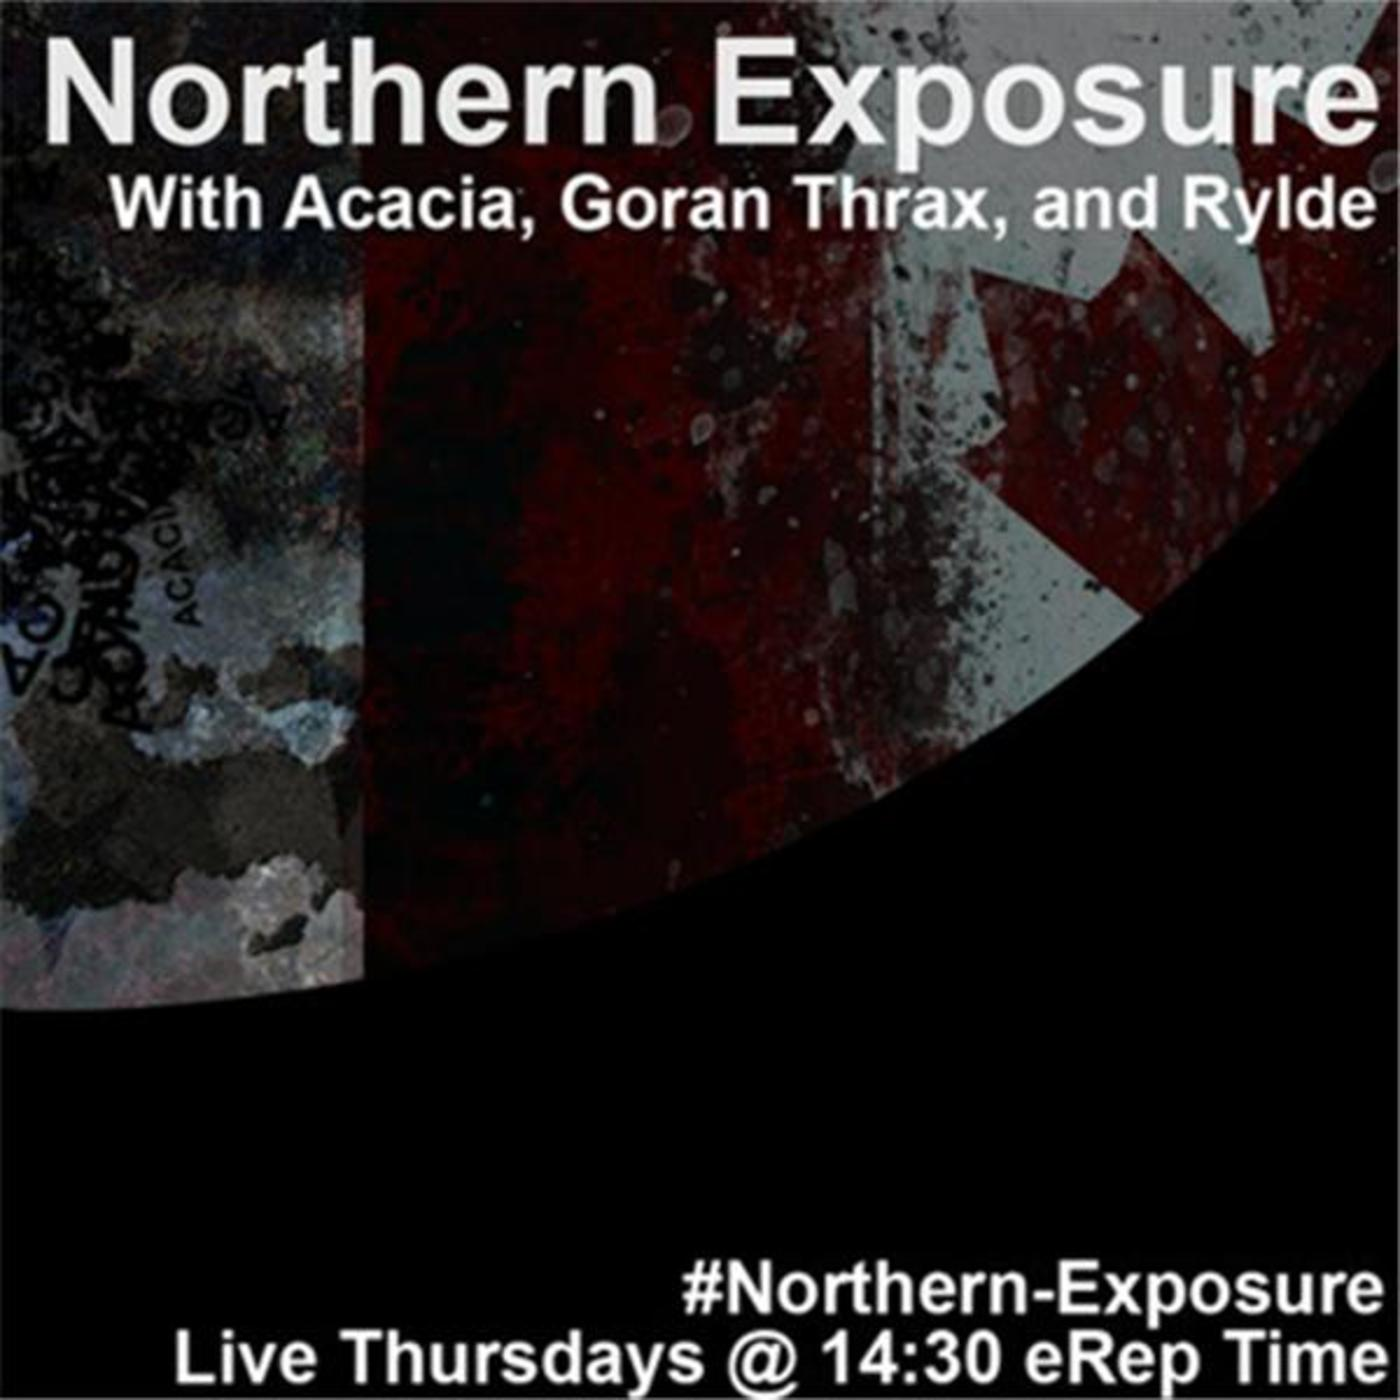 Northern-Exposure